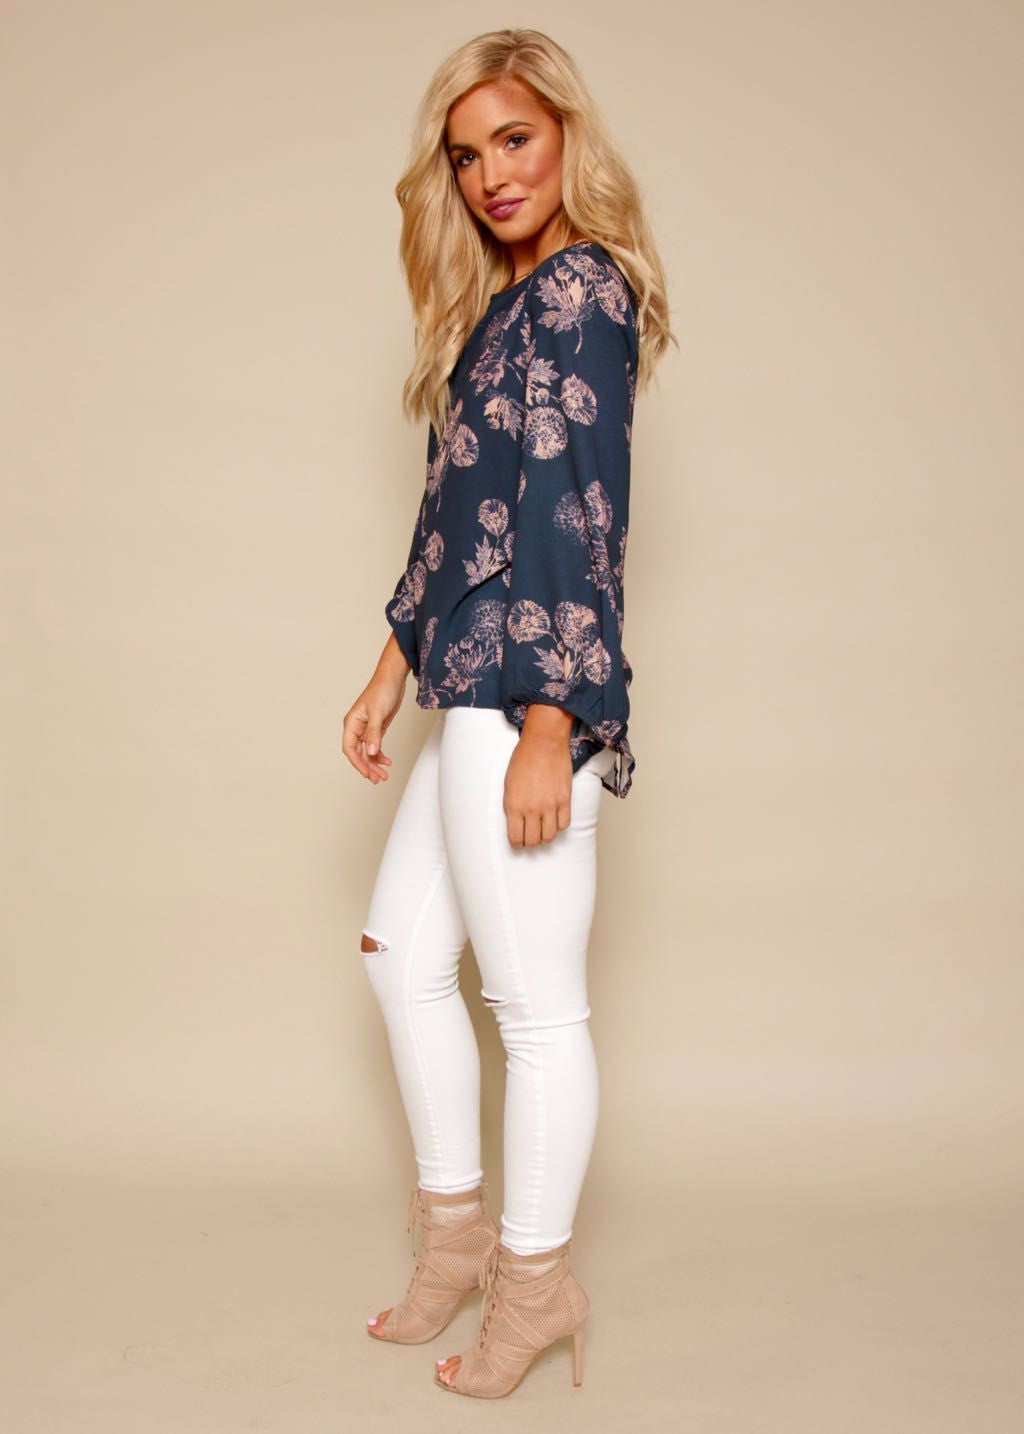 Golden Lights Blouse - Dandelion